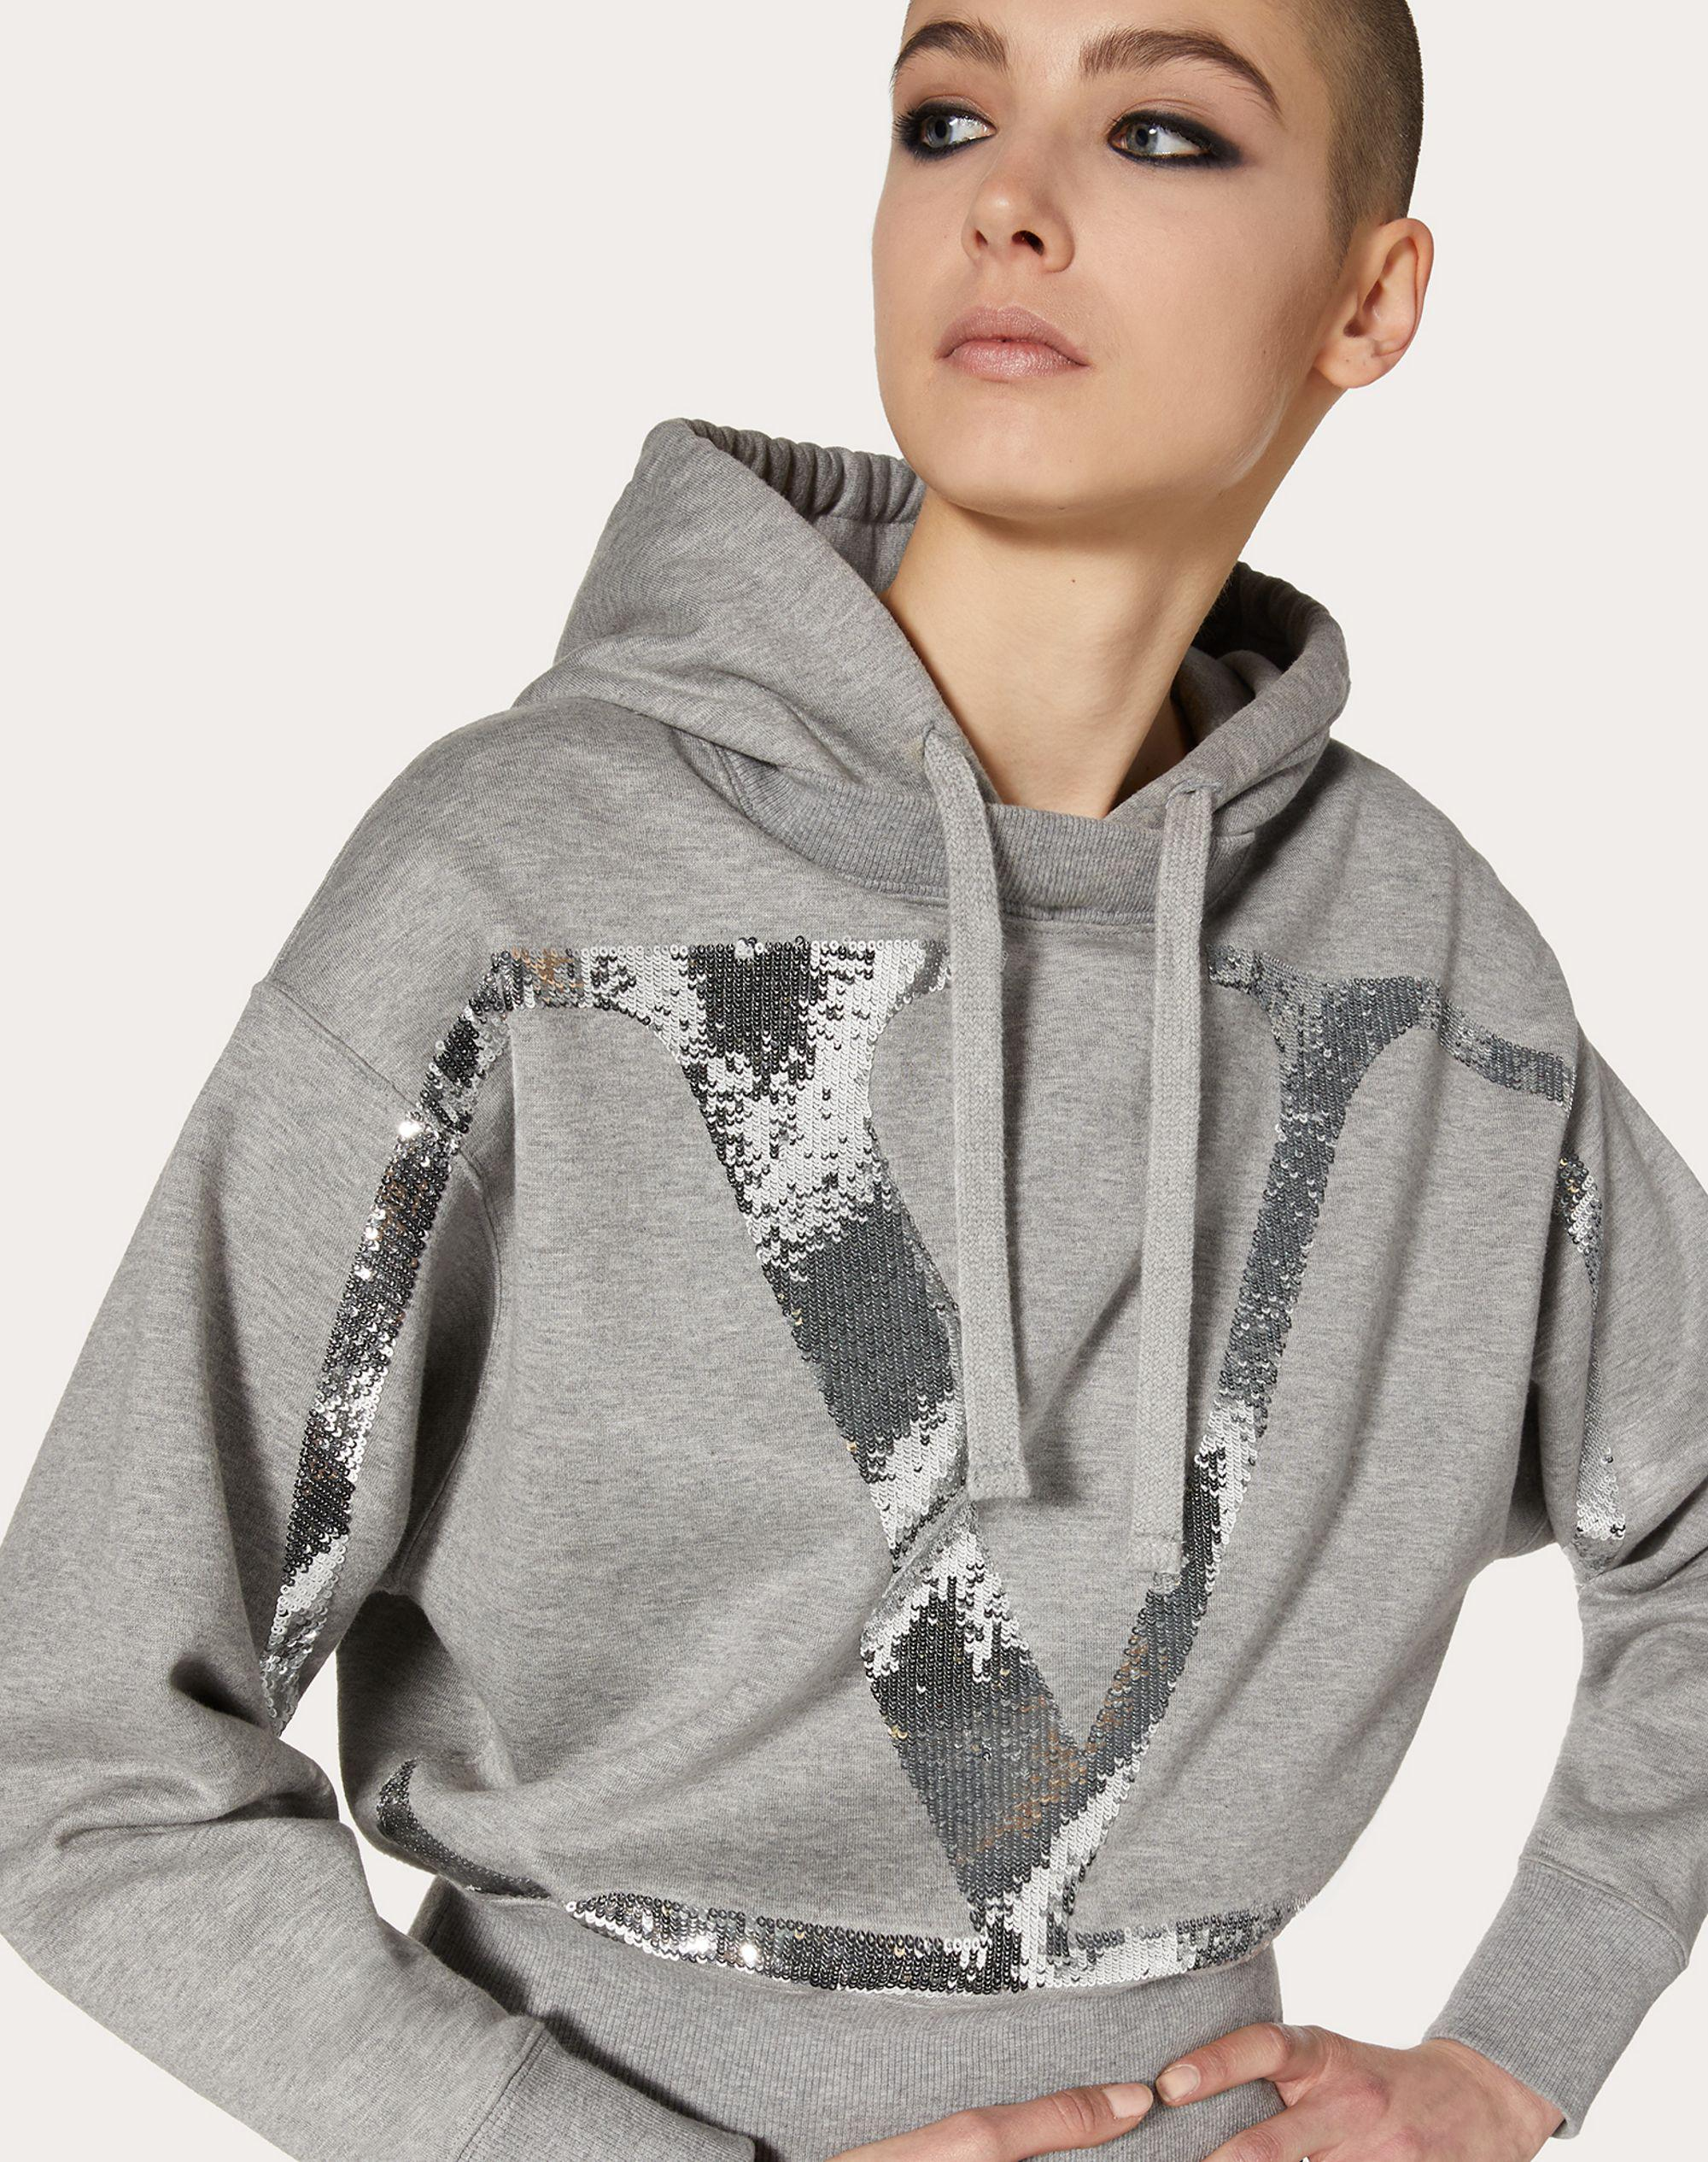 Jersey Sweatshirt with VLogo Signature Embroidery 3